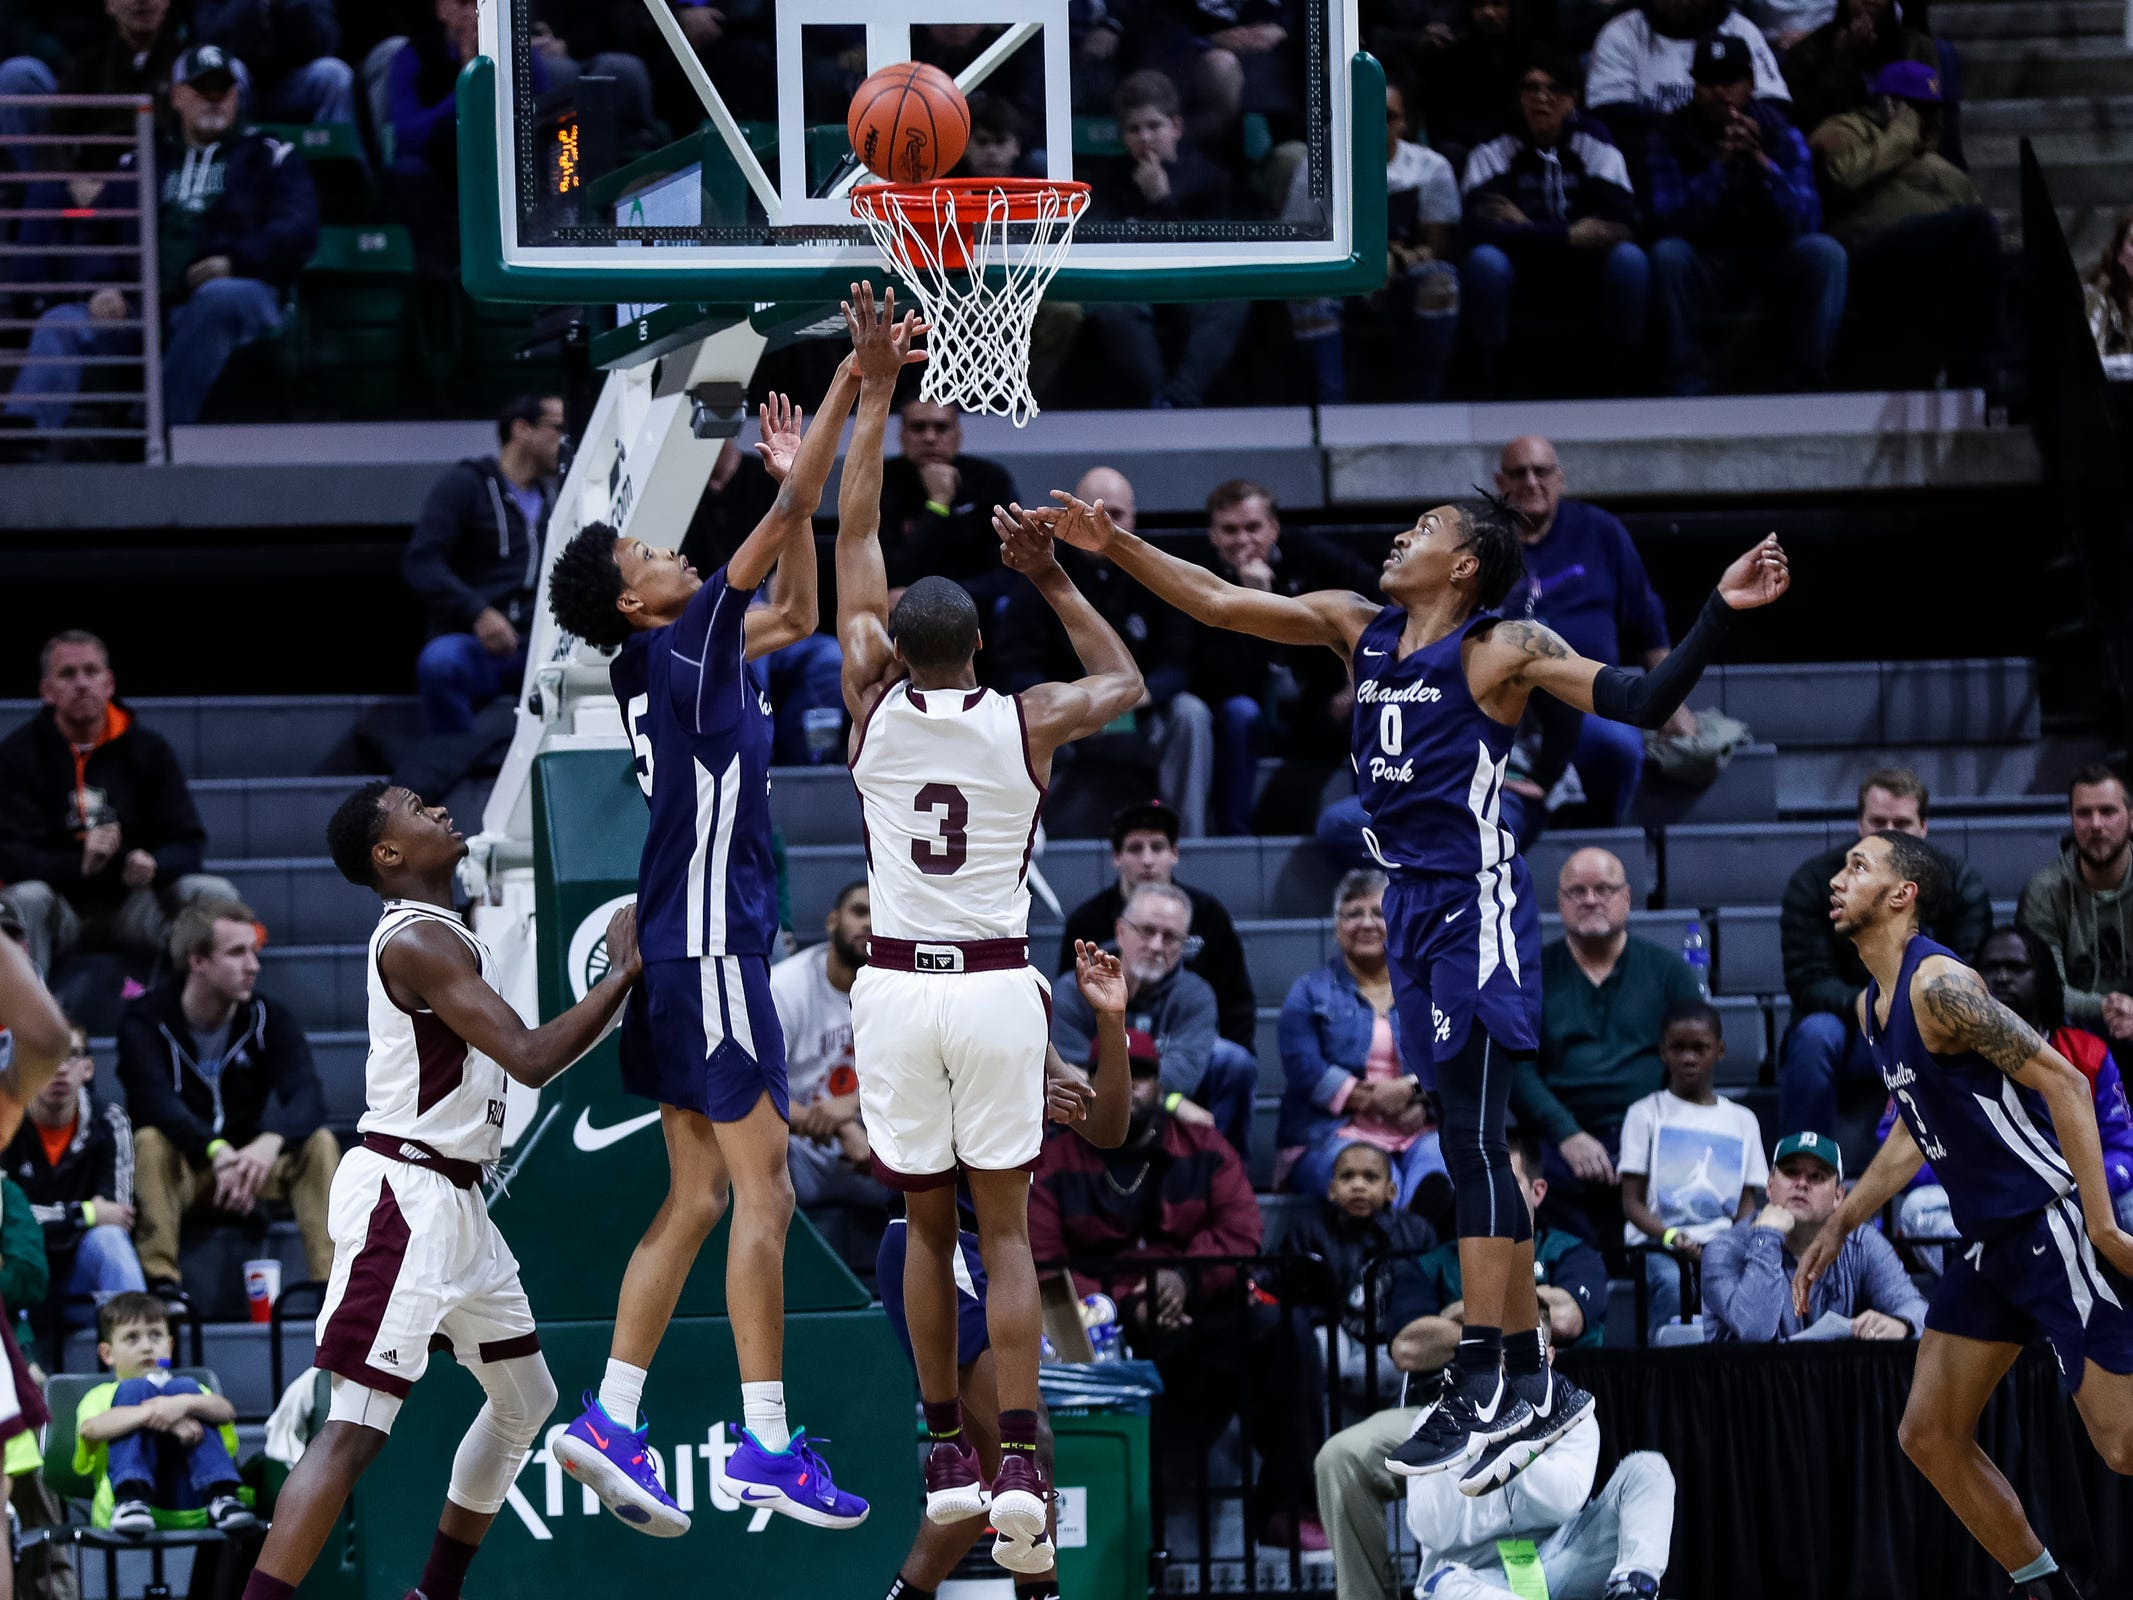 River Rouge's Micah Parrish (3) shoots against Harper Woods Chandler Park's Tyland Tate (5) and Andre Bradford (0) during the first half of MHSAA Division 2 semifinal at the Breslin Center in East Lansing, Friday, March 15, 2019.